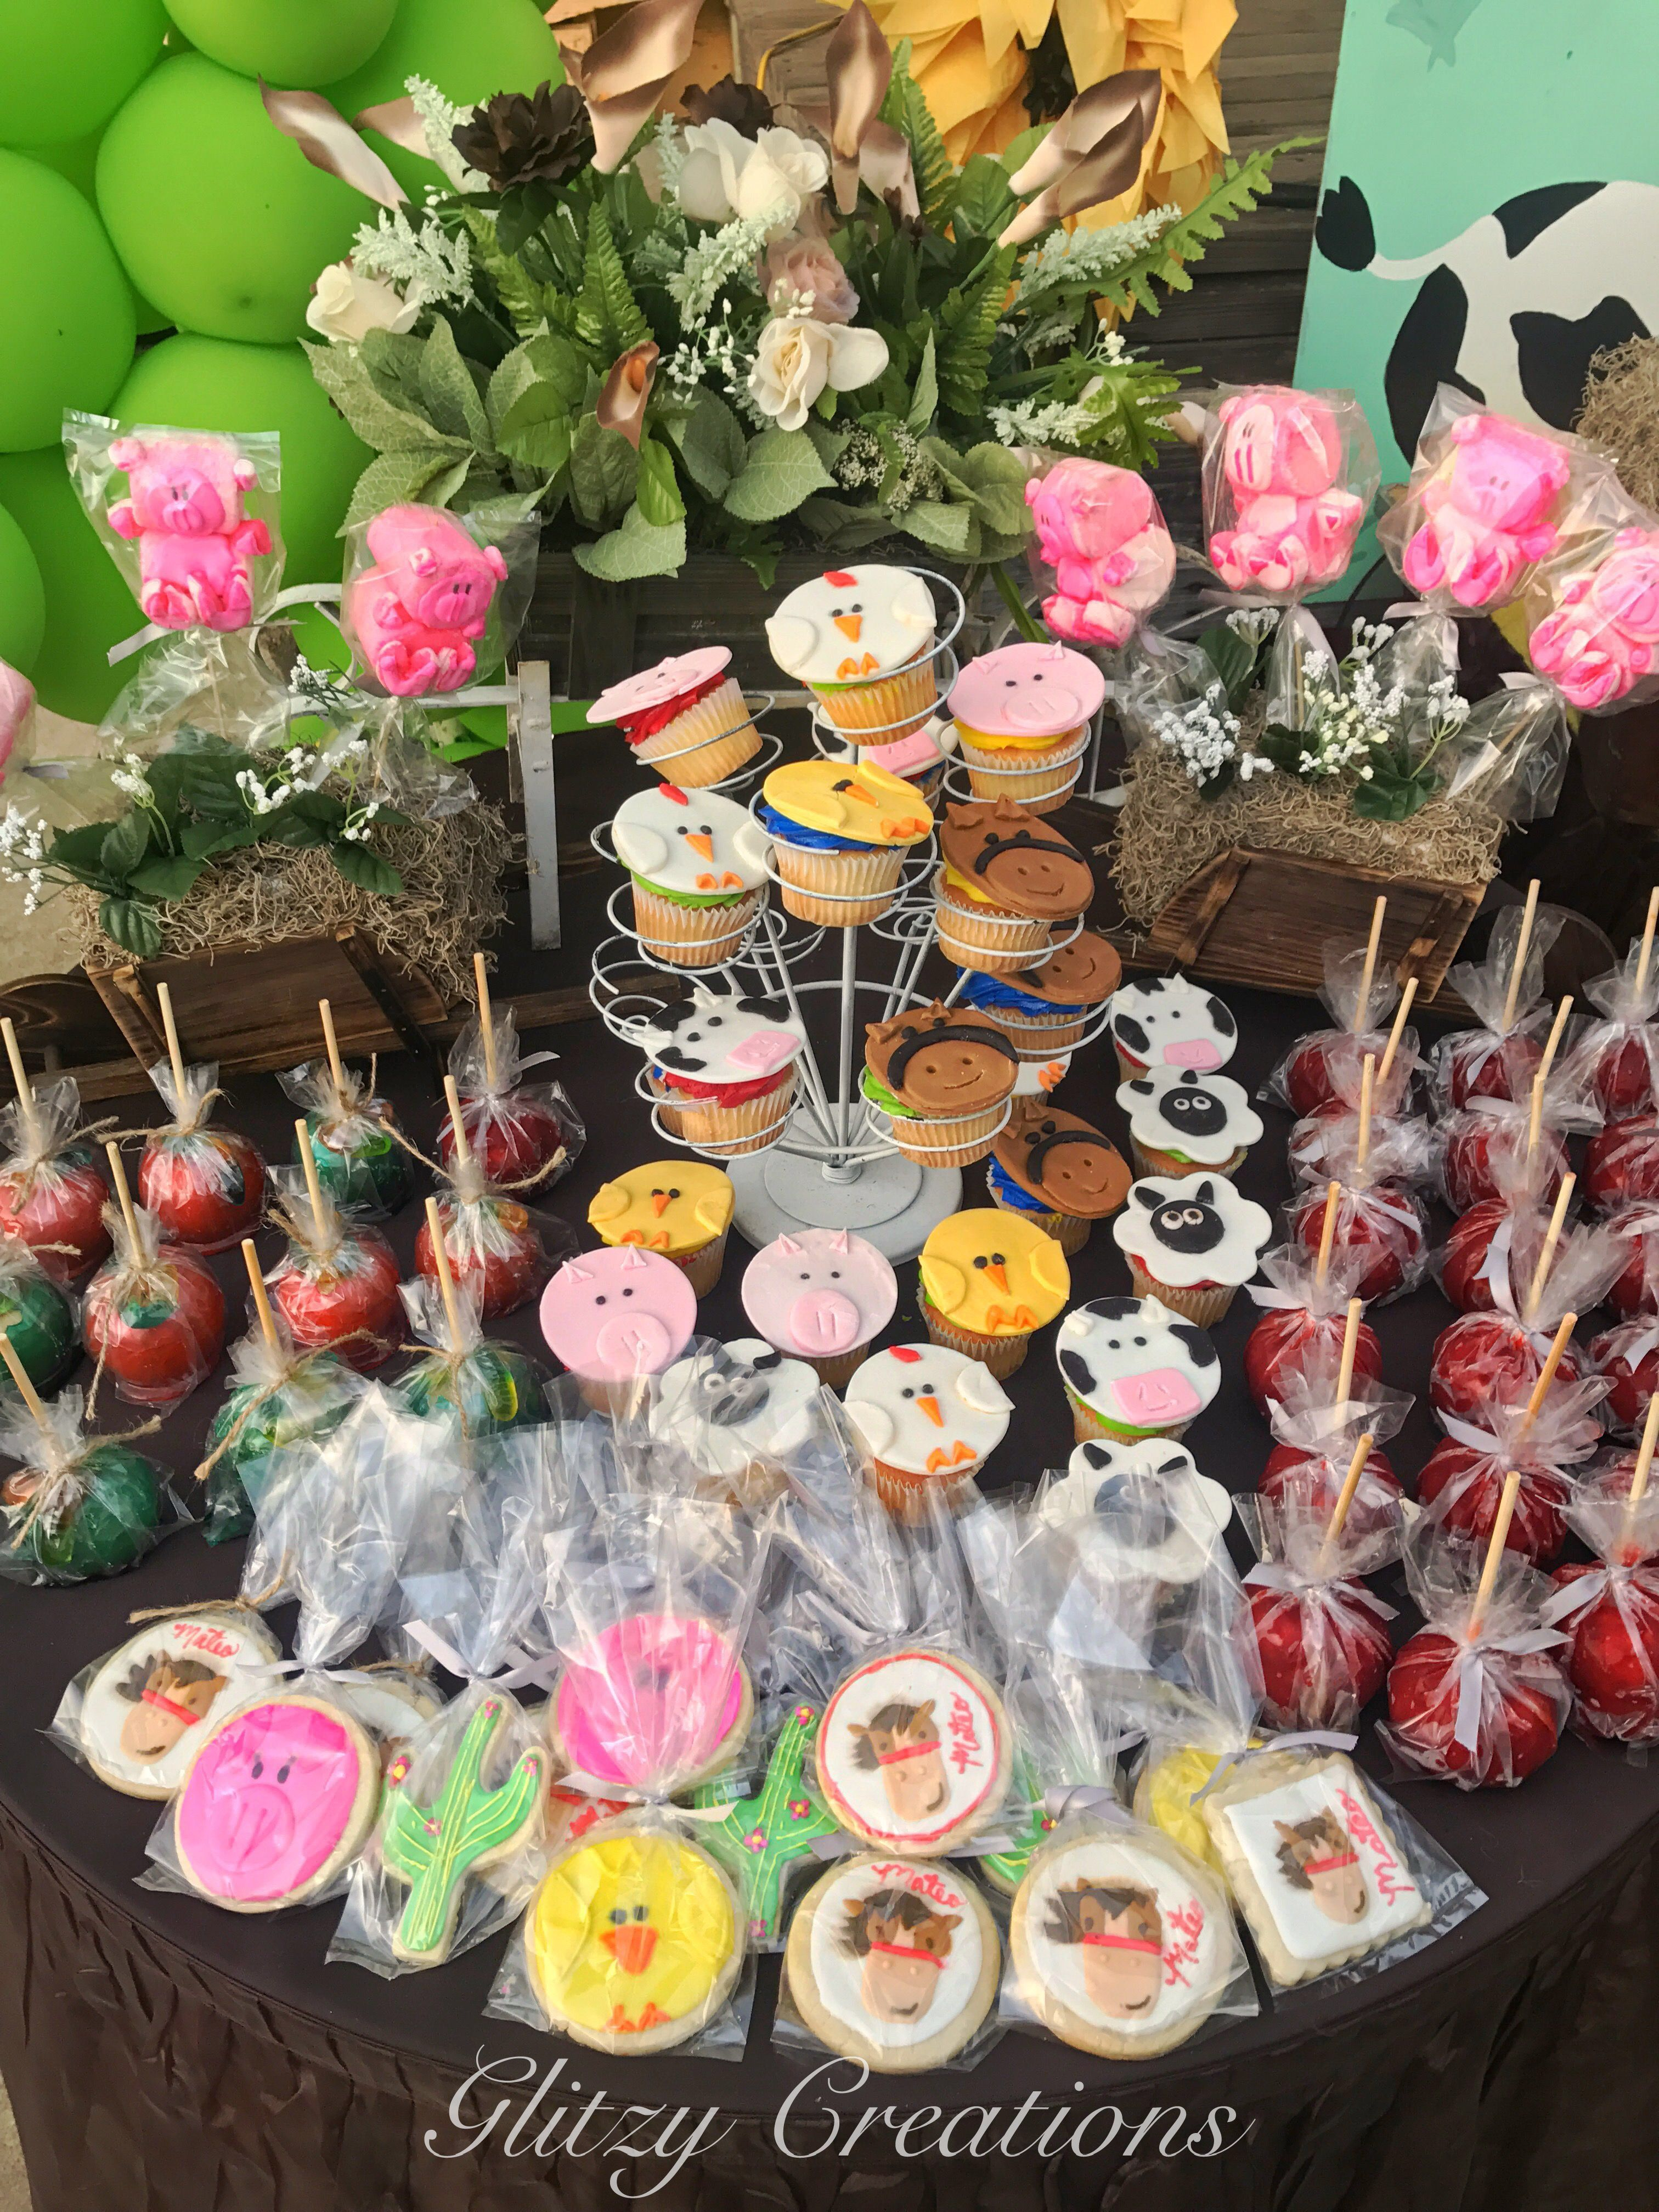 Astounding Candy Sweets Dessert Party Ideas Dessert Table Barnyard Download Free Architecture Designs Scobabritishbridgeorg